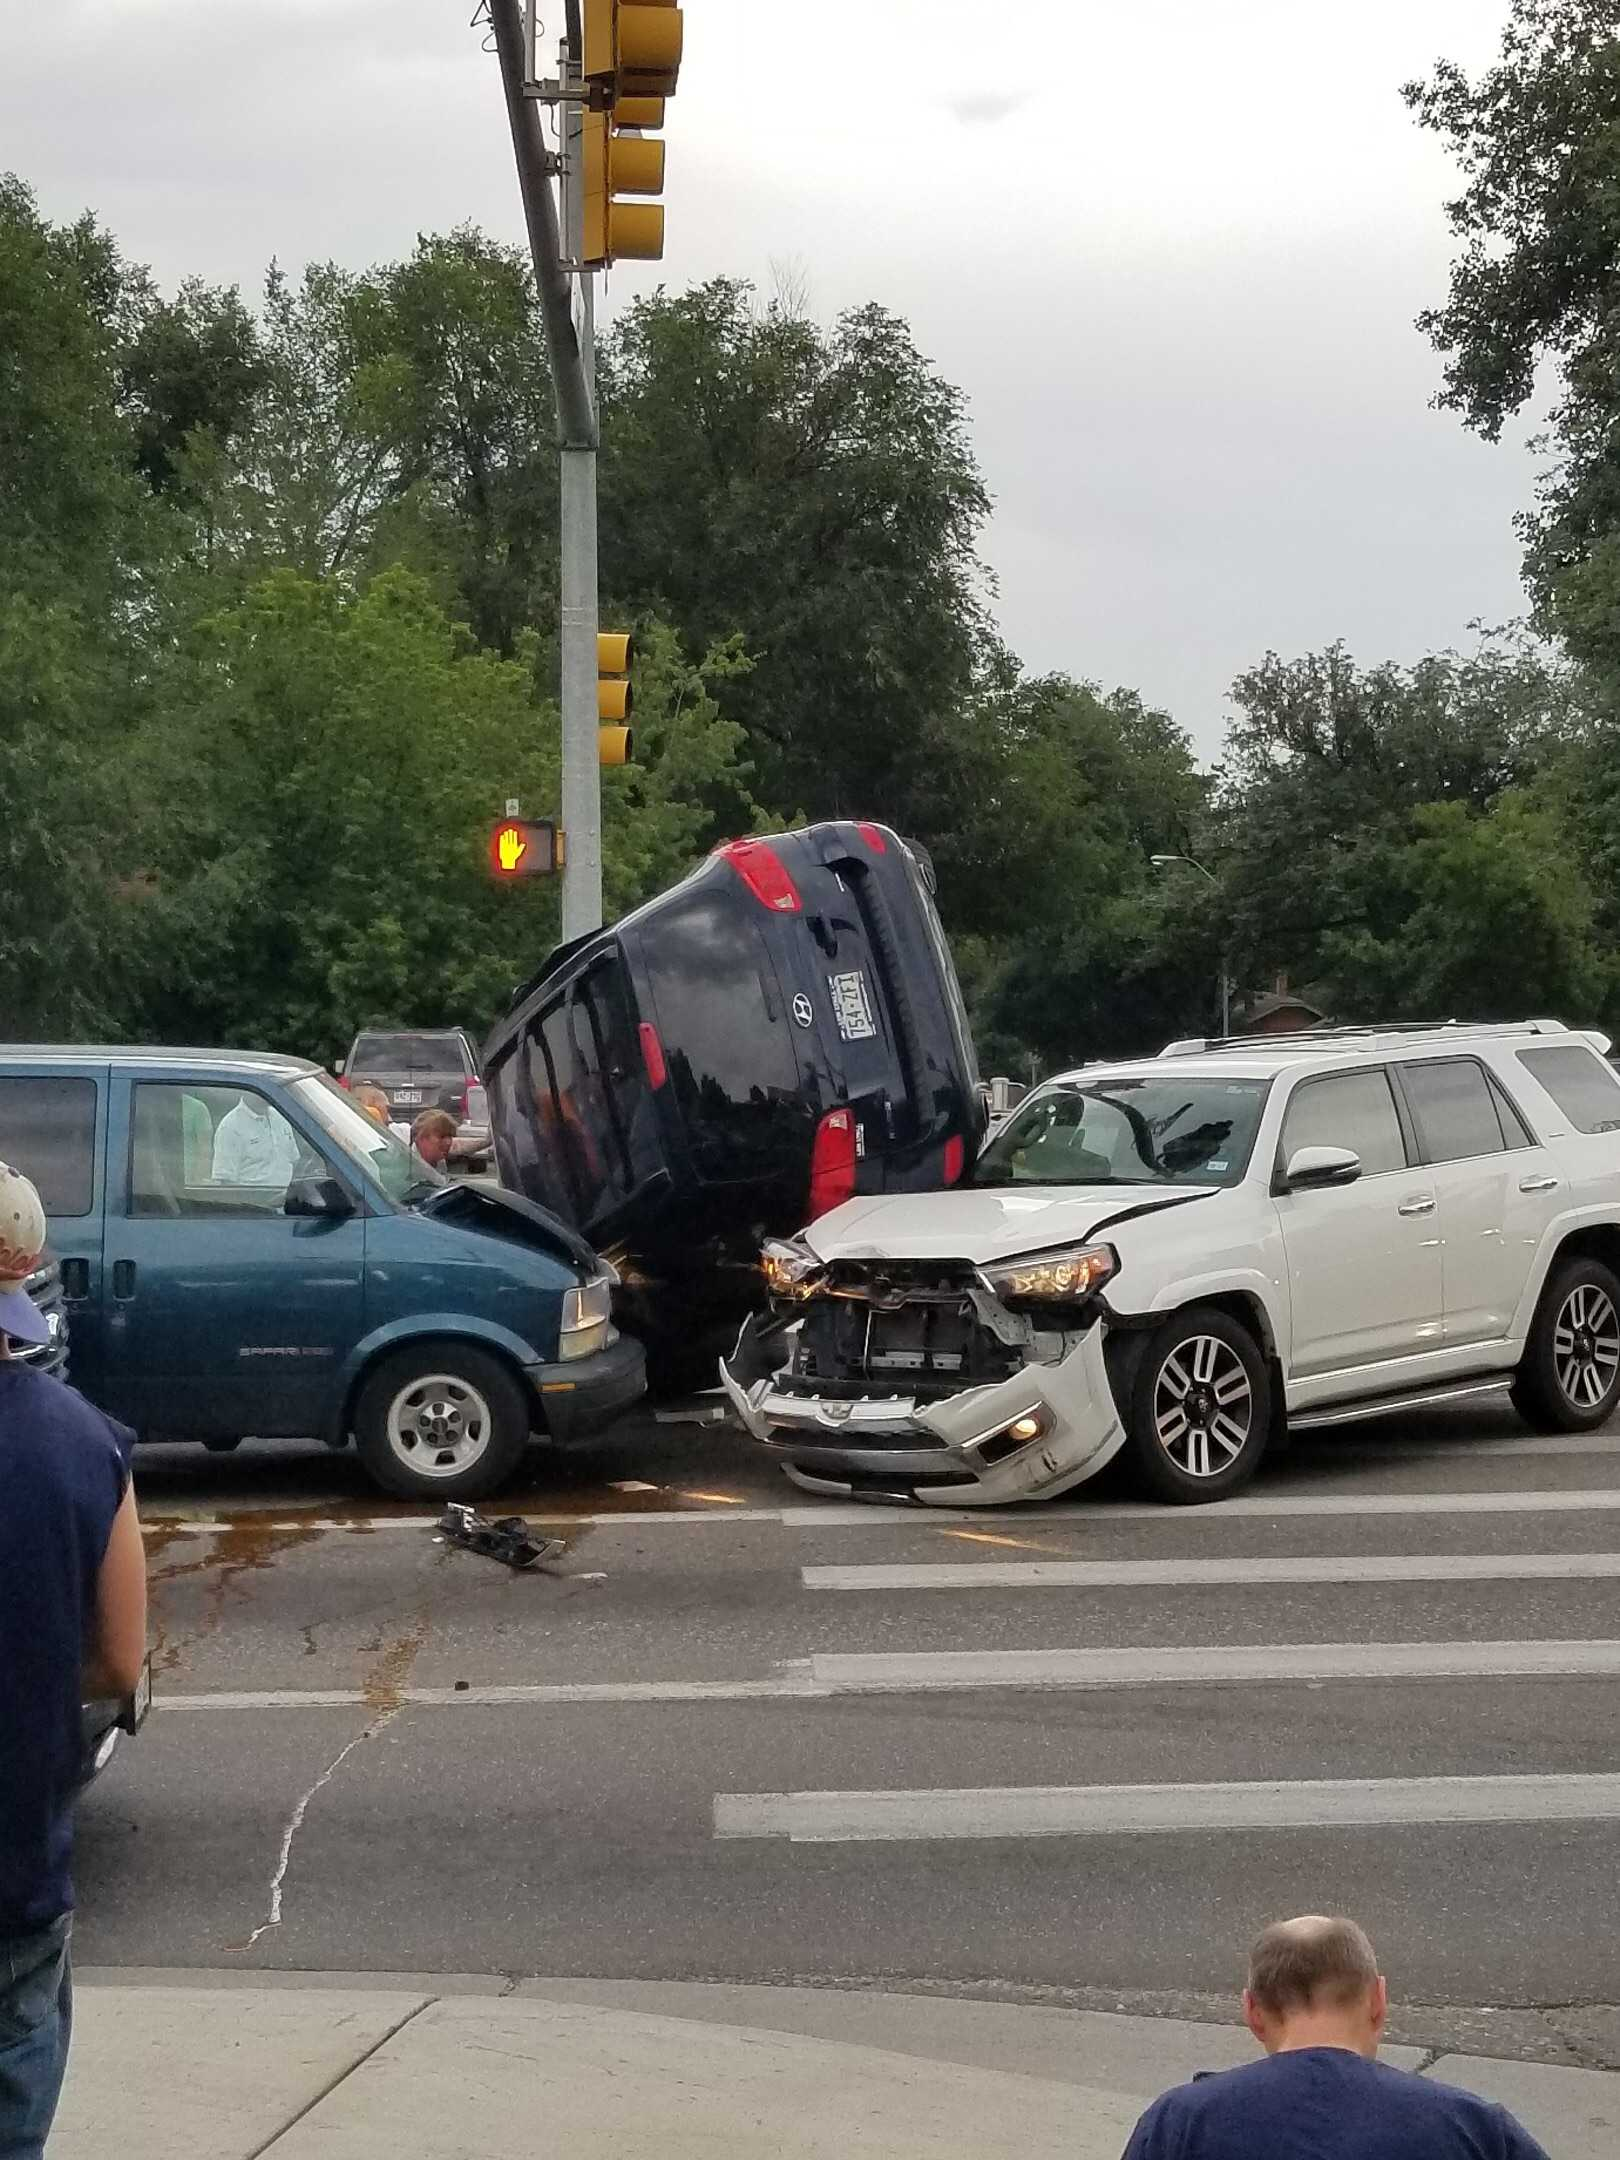 Three cars involved in accident at intersection of Mulberry